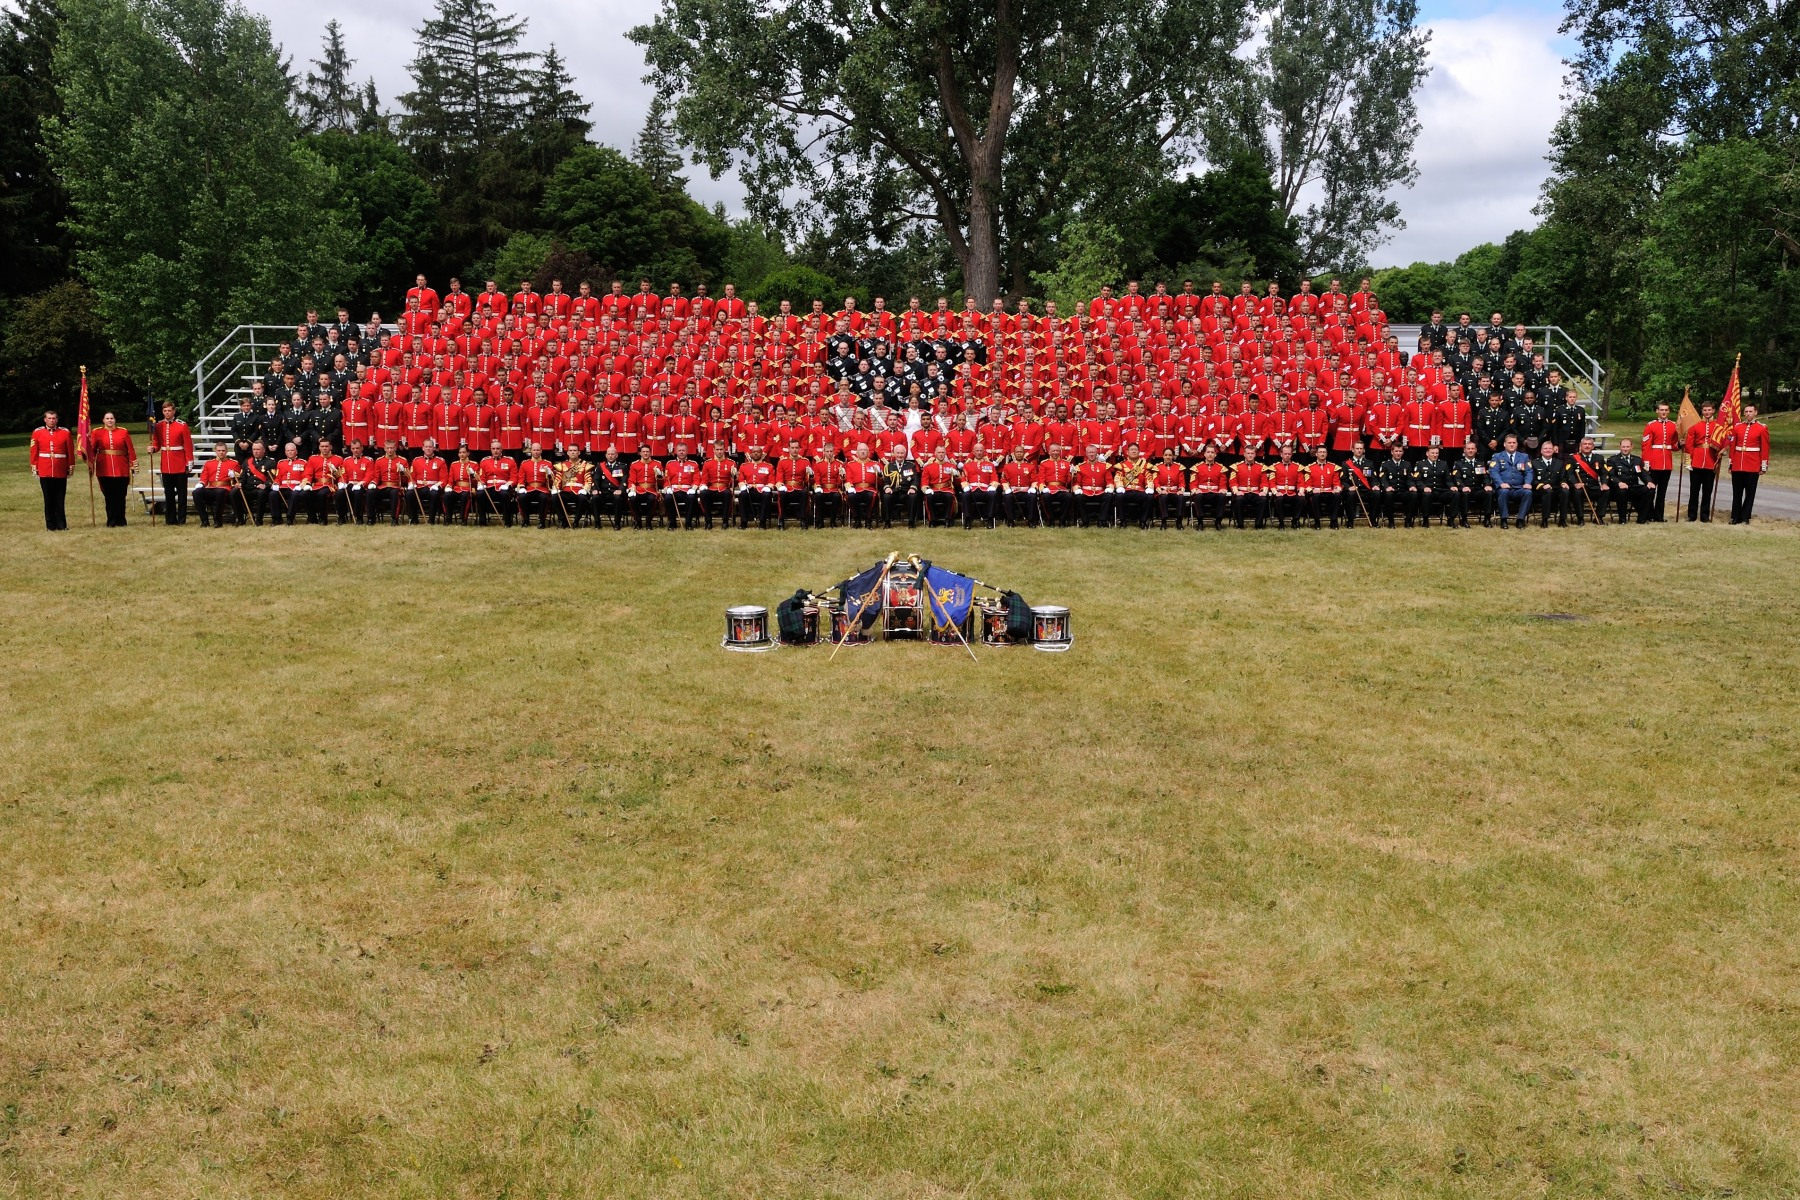 The Ceremonial Guard is comprised of members of the Regular and Reserve Force of the Canadian Forces. The Band is recruited from universities, conservatories and reserve bands across the country.